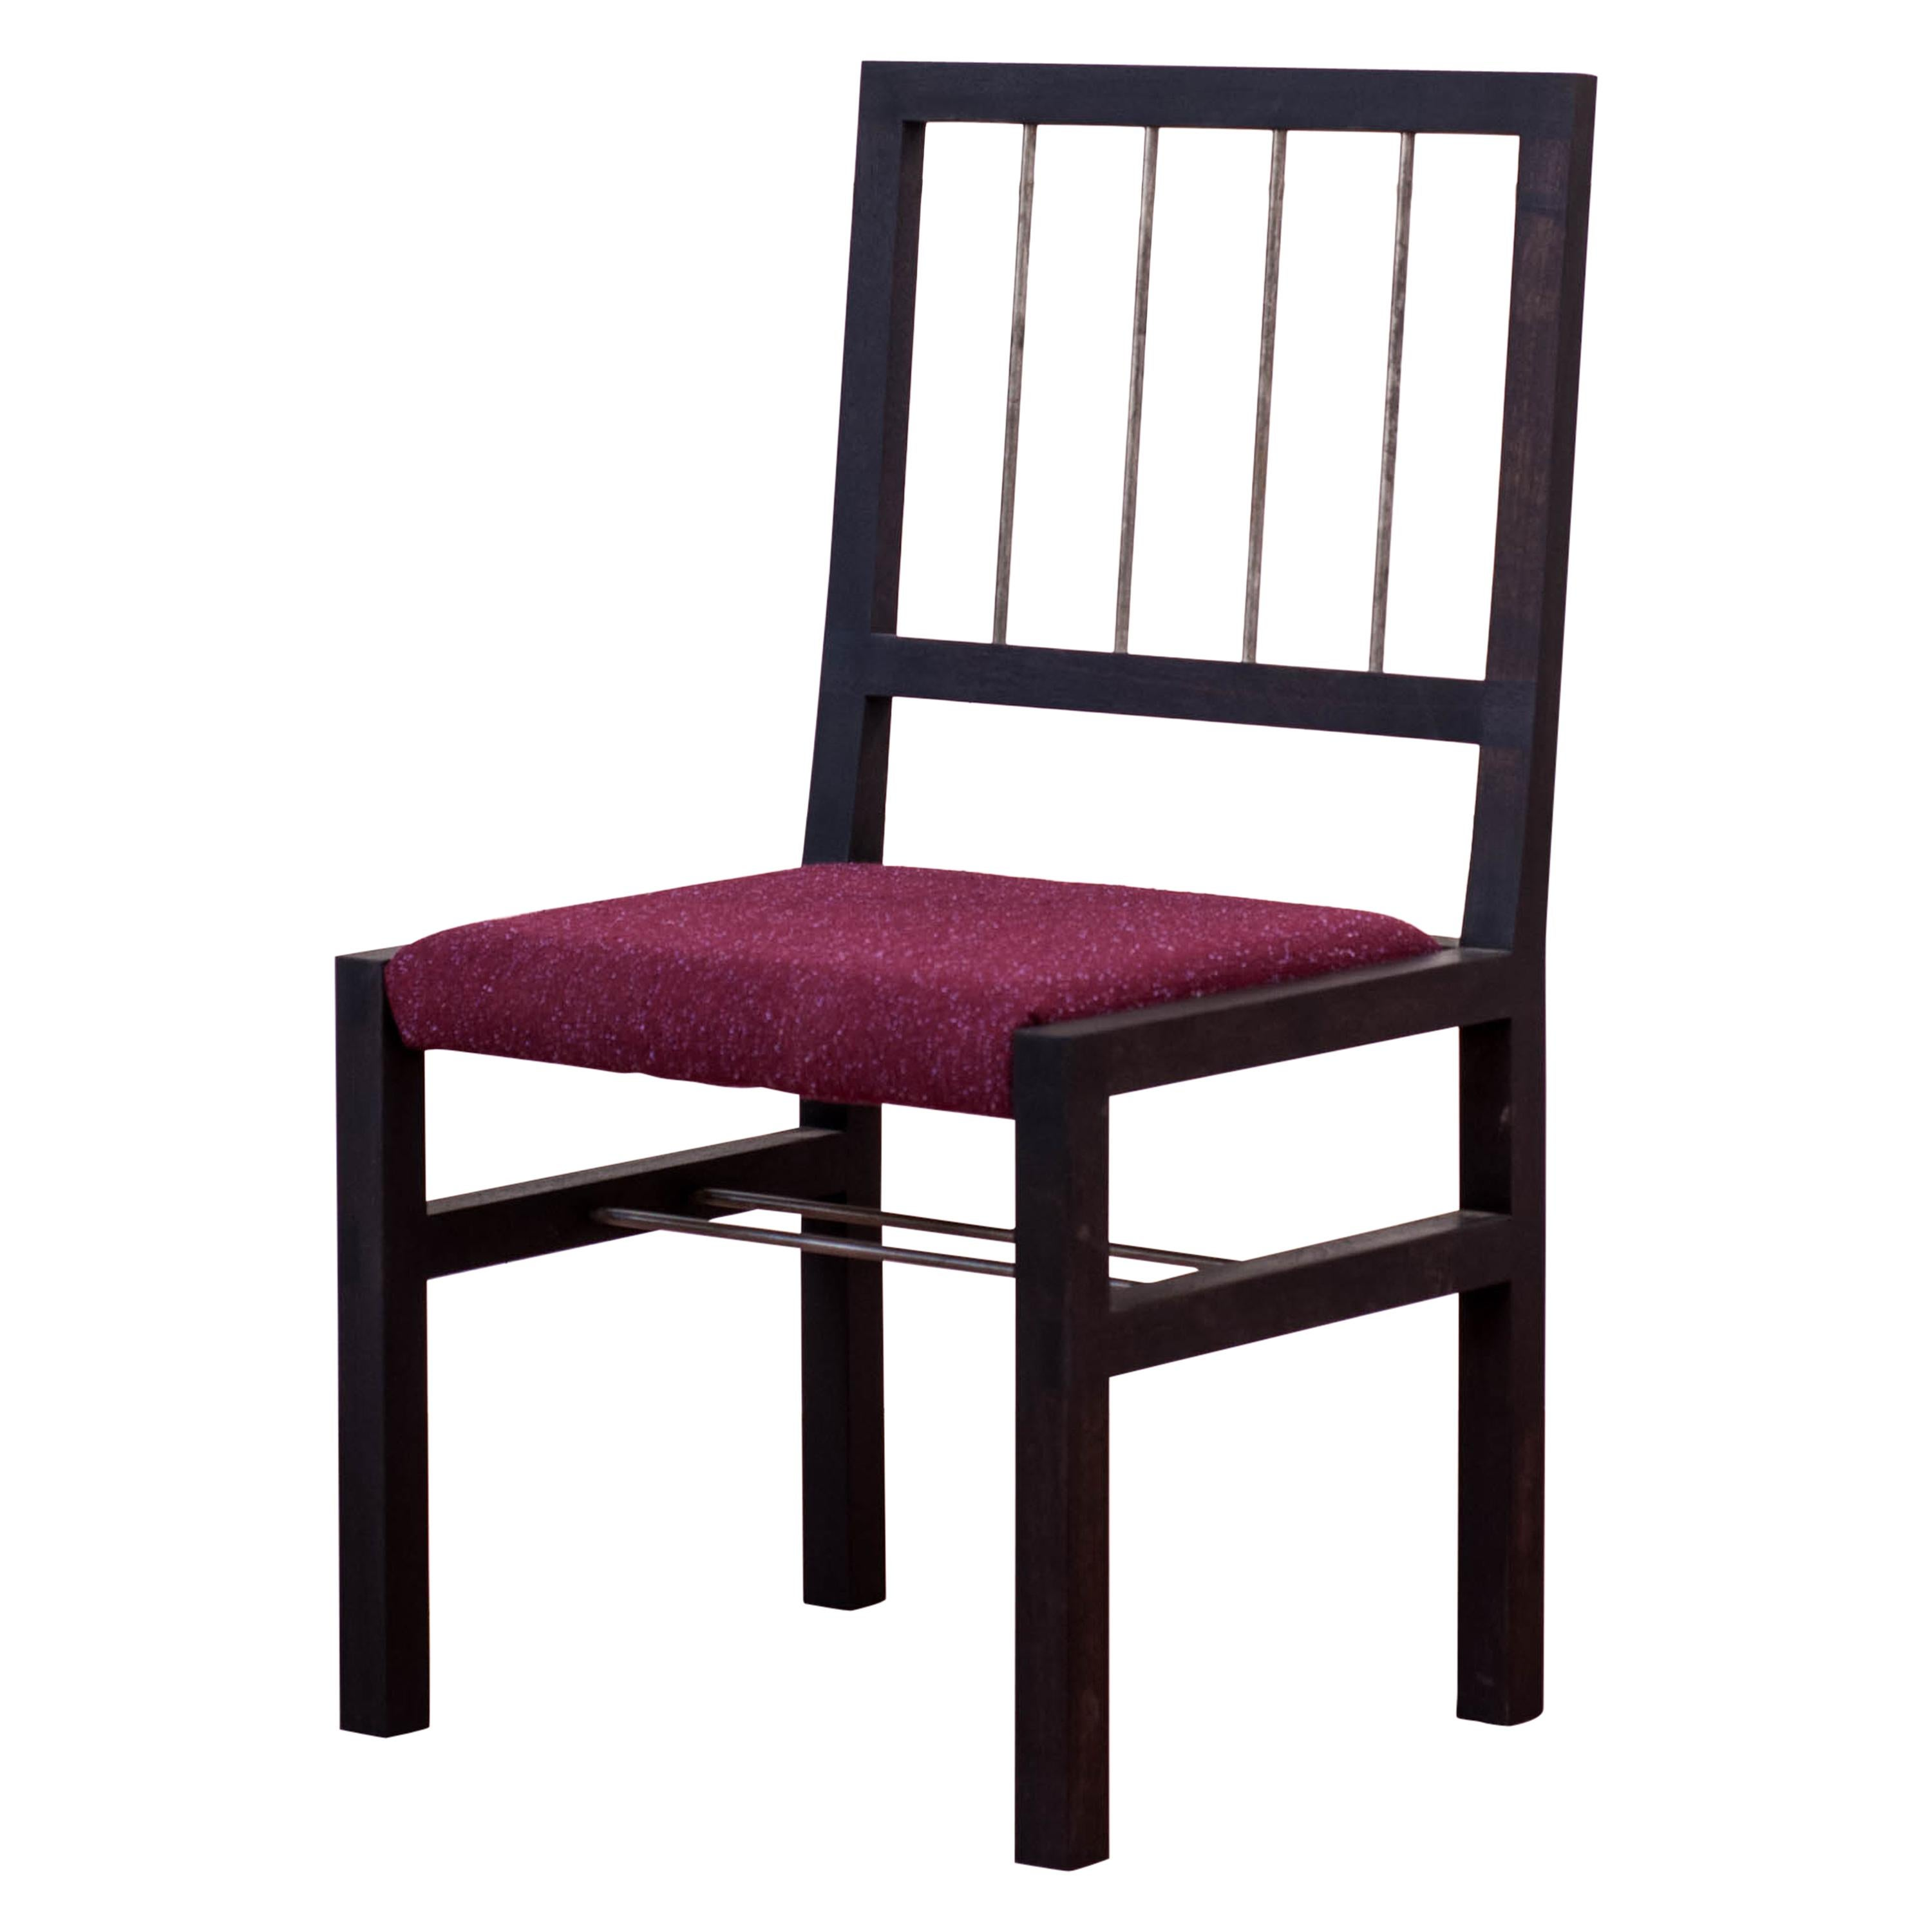 Ebonized Walnut Clayo Chair with Silver Plated Bronze Rungs, Kvadrat Upholstery